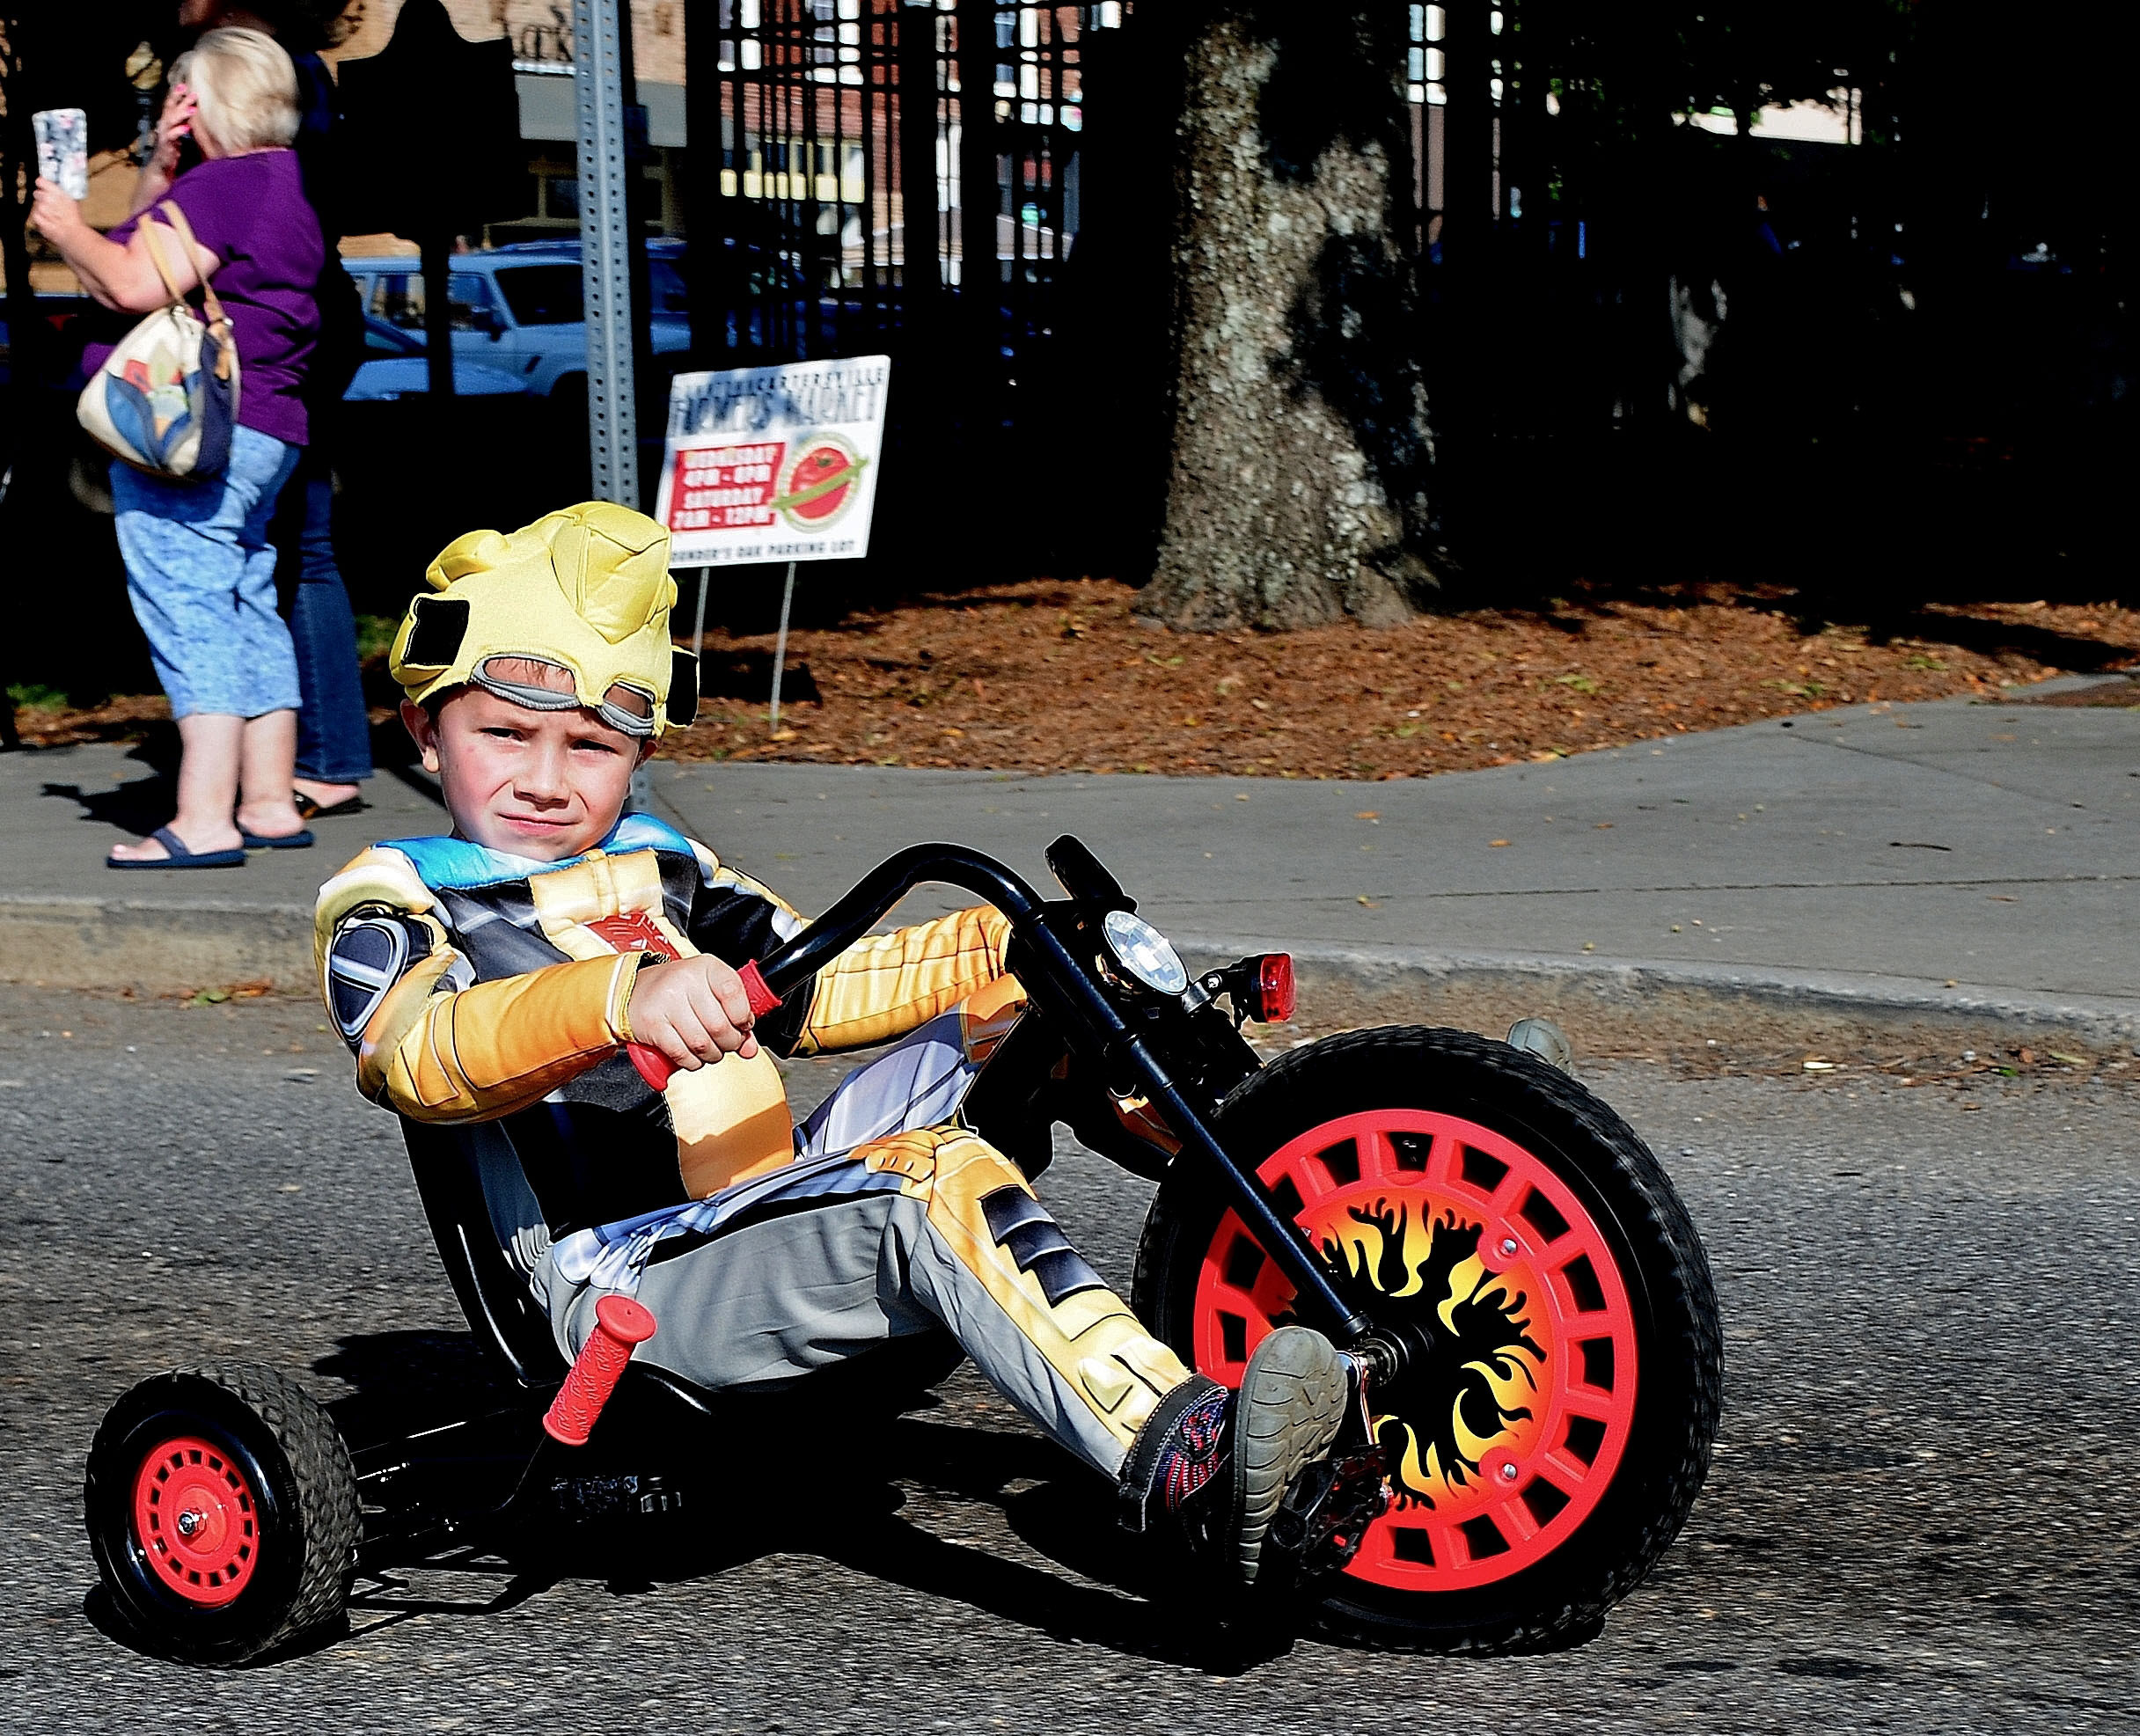 The 62nd annual Kiddie Day Parade, presented by the Kiwanis Club of Cartersville, took place in downtown Cartersville last year.